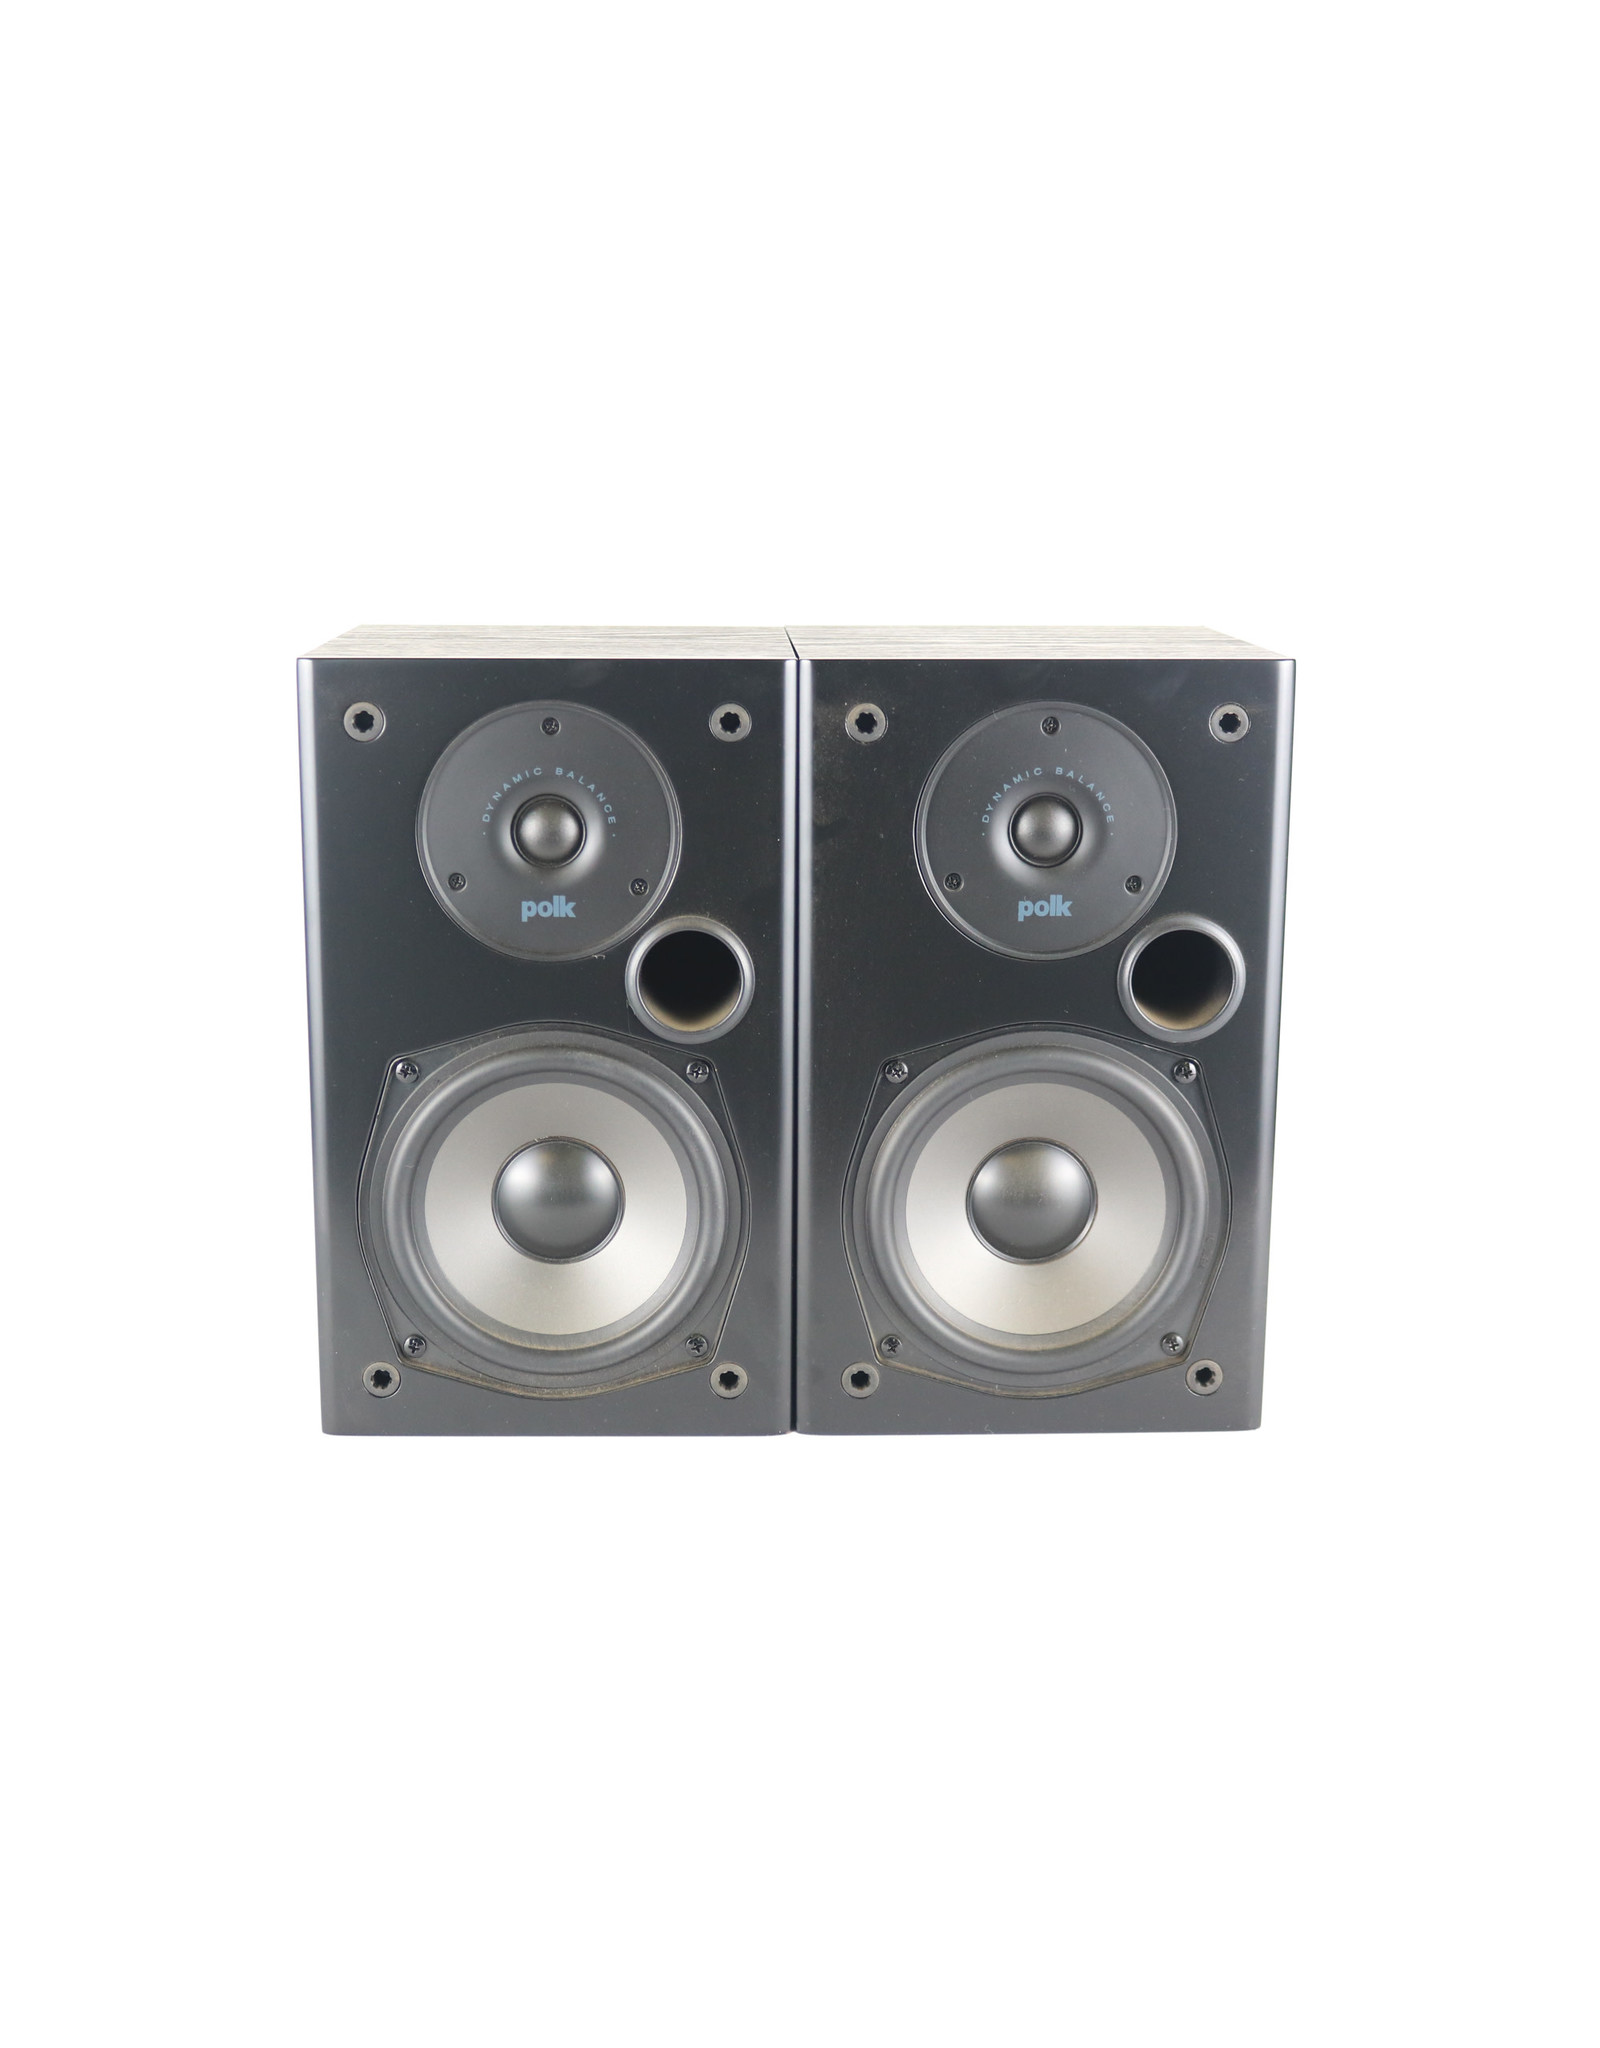 Polk Polk Audio T15 Bookshelf Speakers USED